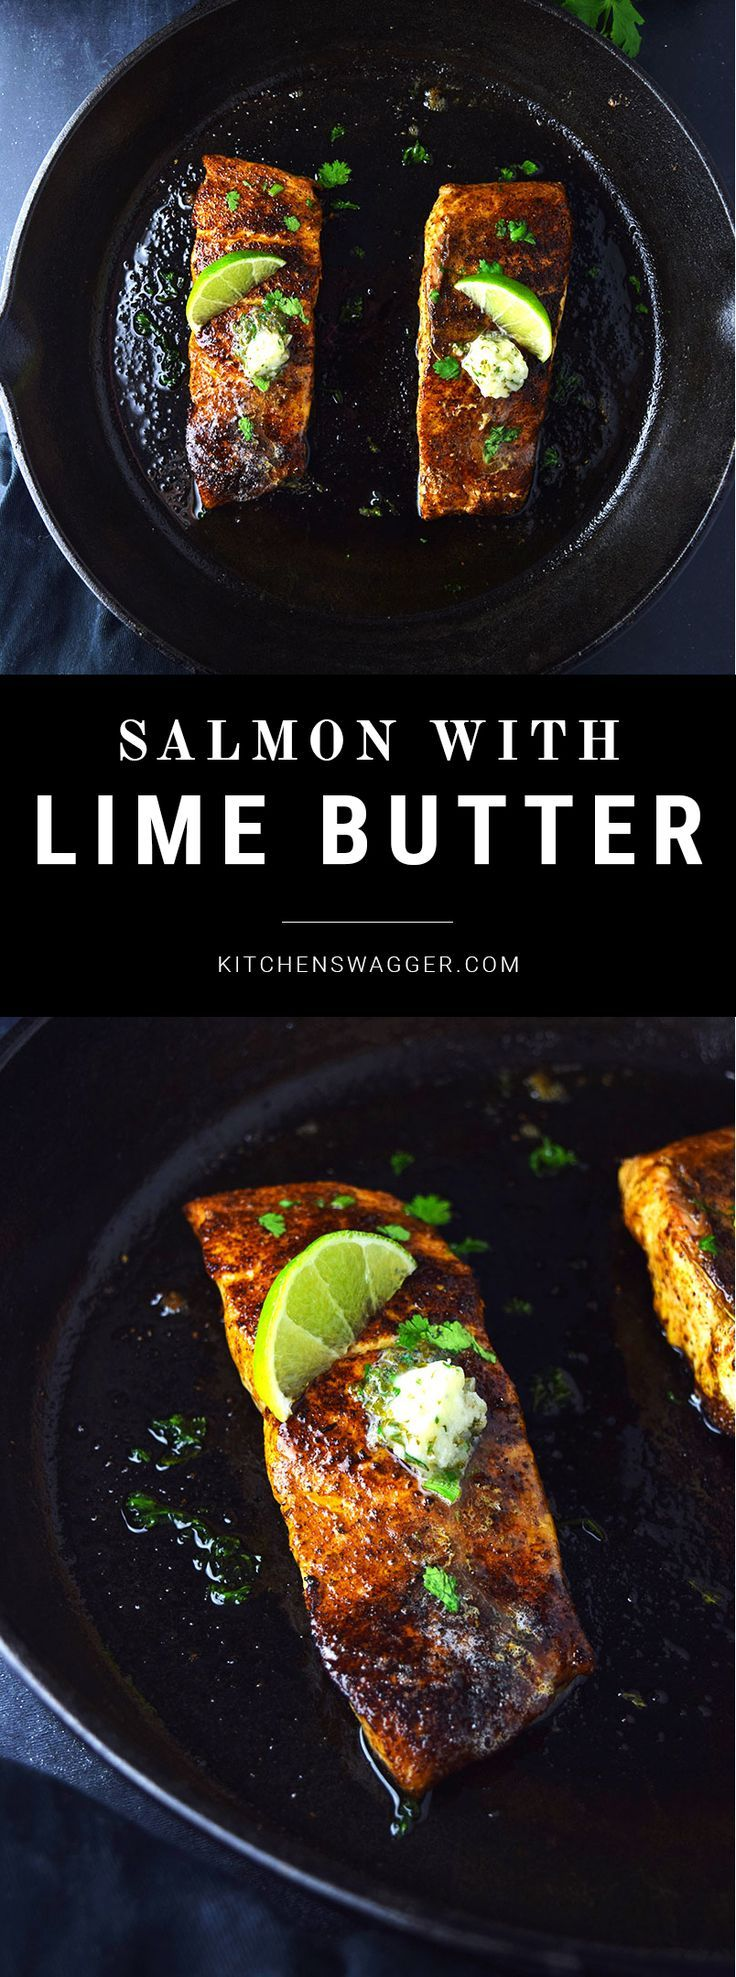 Blackened salmon topped with easy cilantro lime butter.